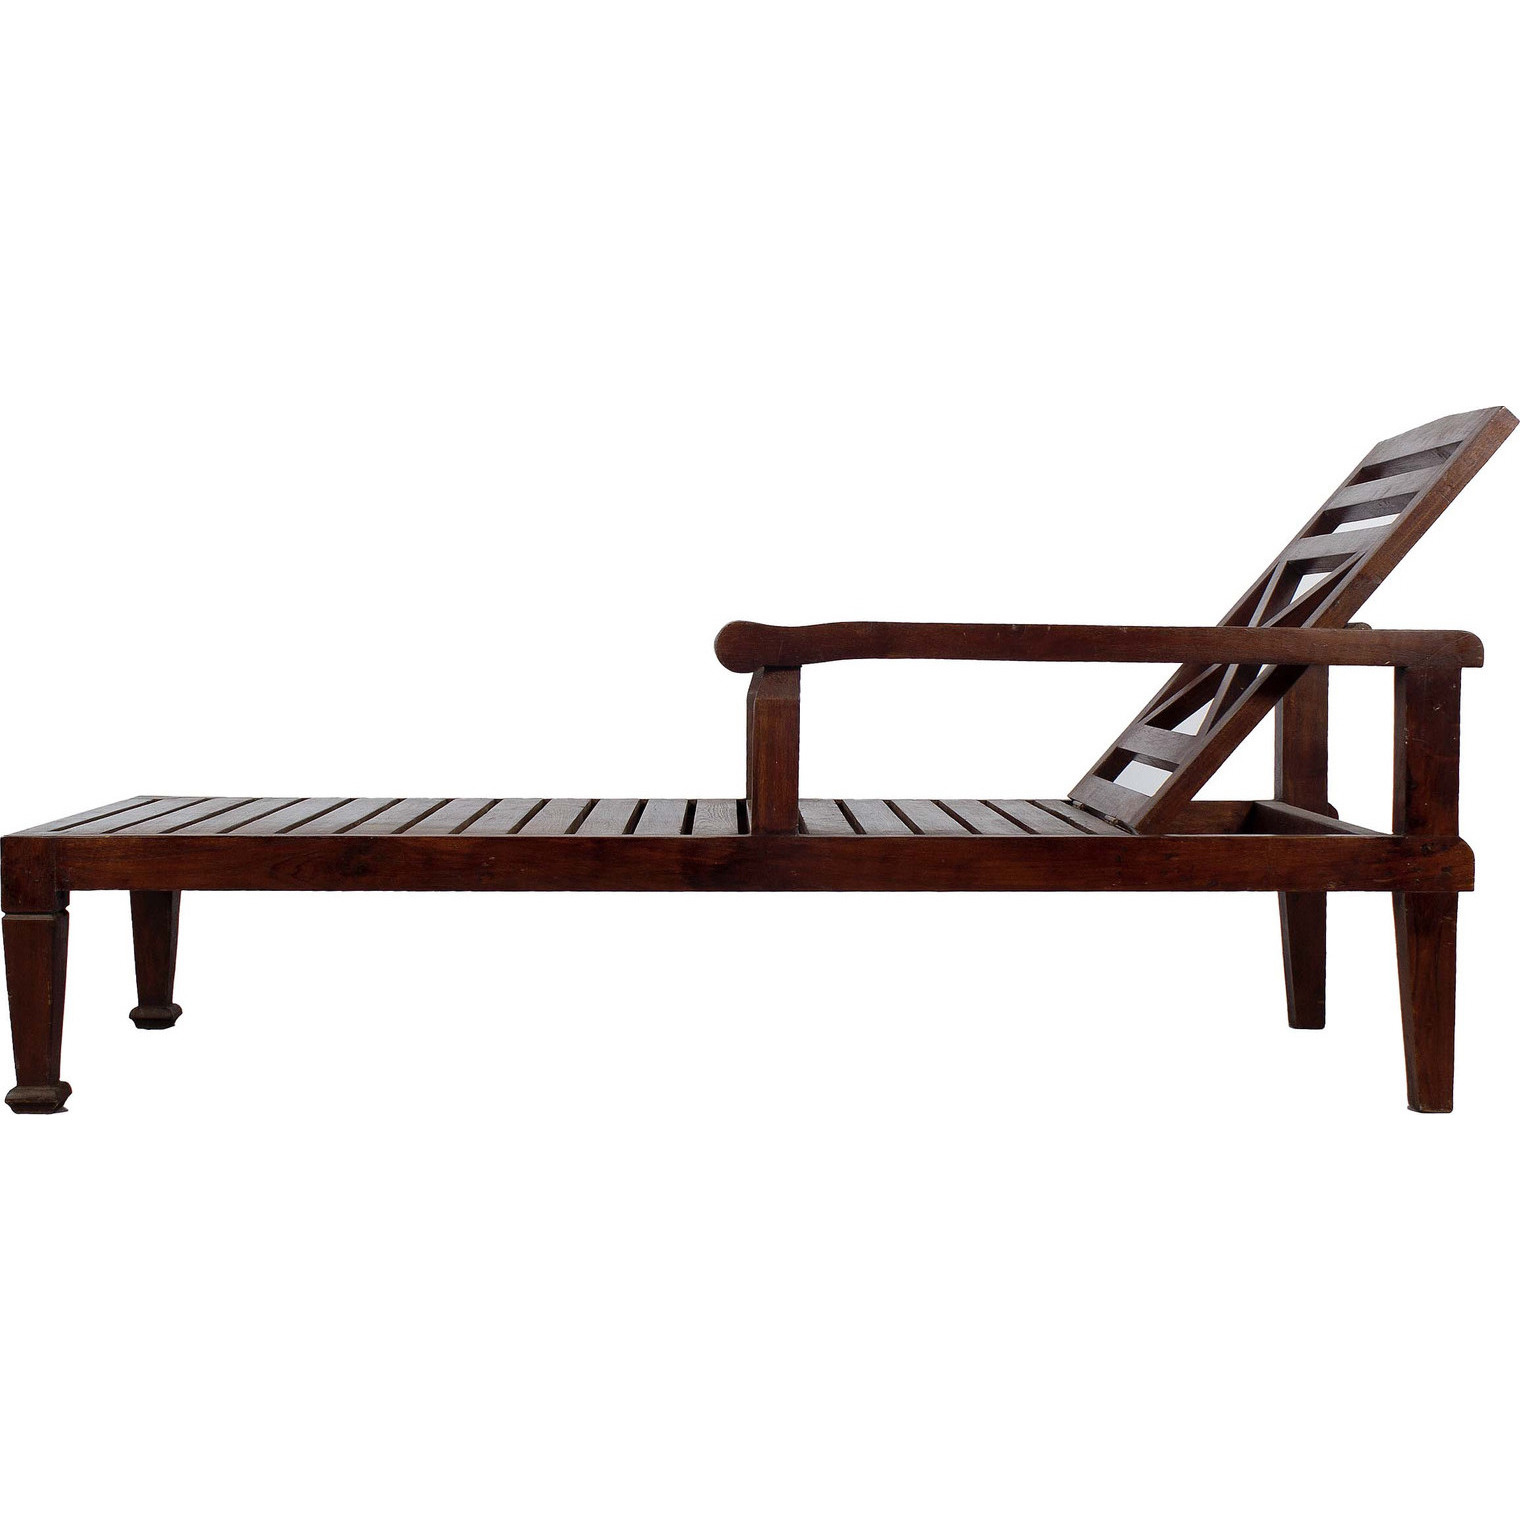 Buy online solid teak wood beach chaise lounge chairb for Beach lounge chaise